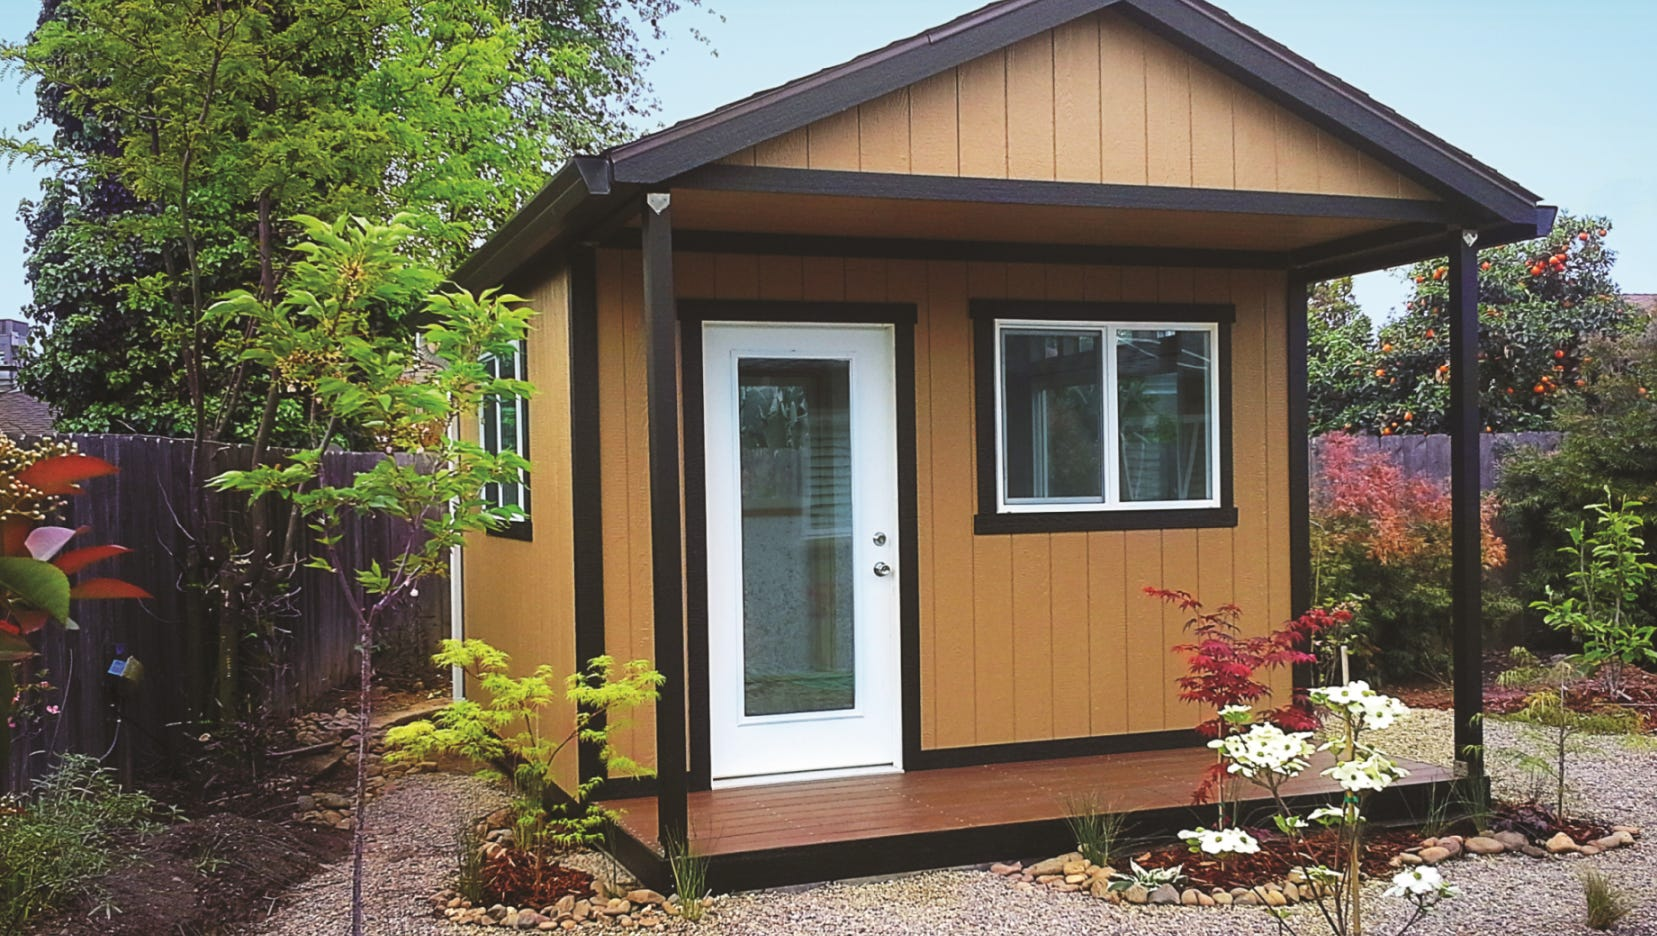 Do You Have Room For Backyard Storage